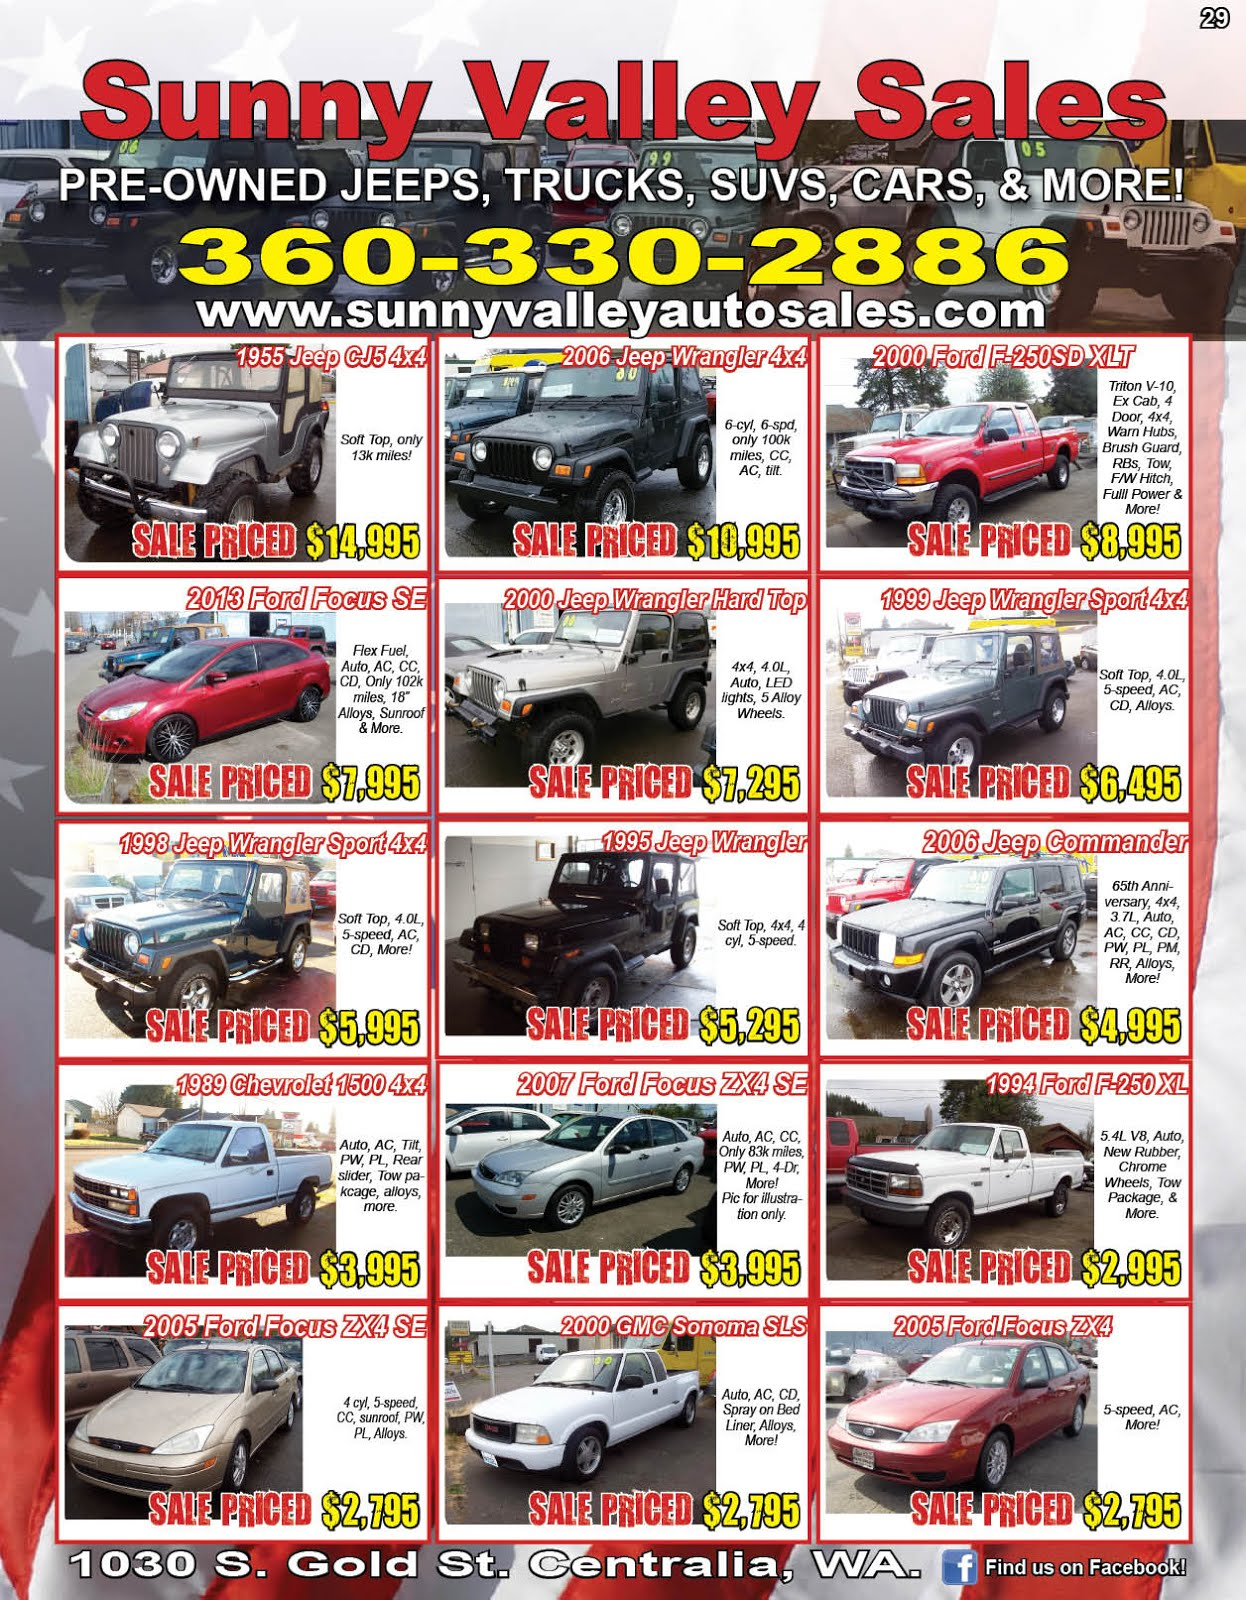 """Sunny Valley Sales"" Used Jeeps, Trucks, Cars, Motorcycles, ATVs, Classics, More!!"